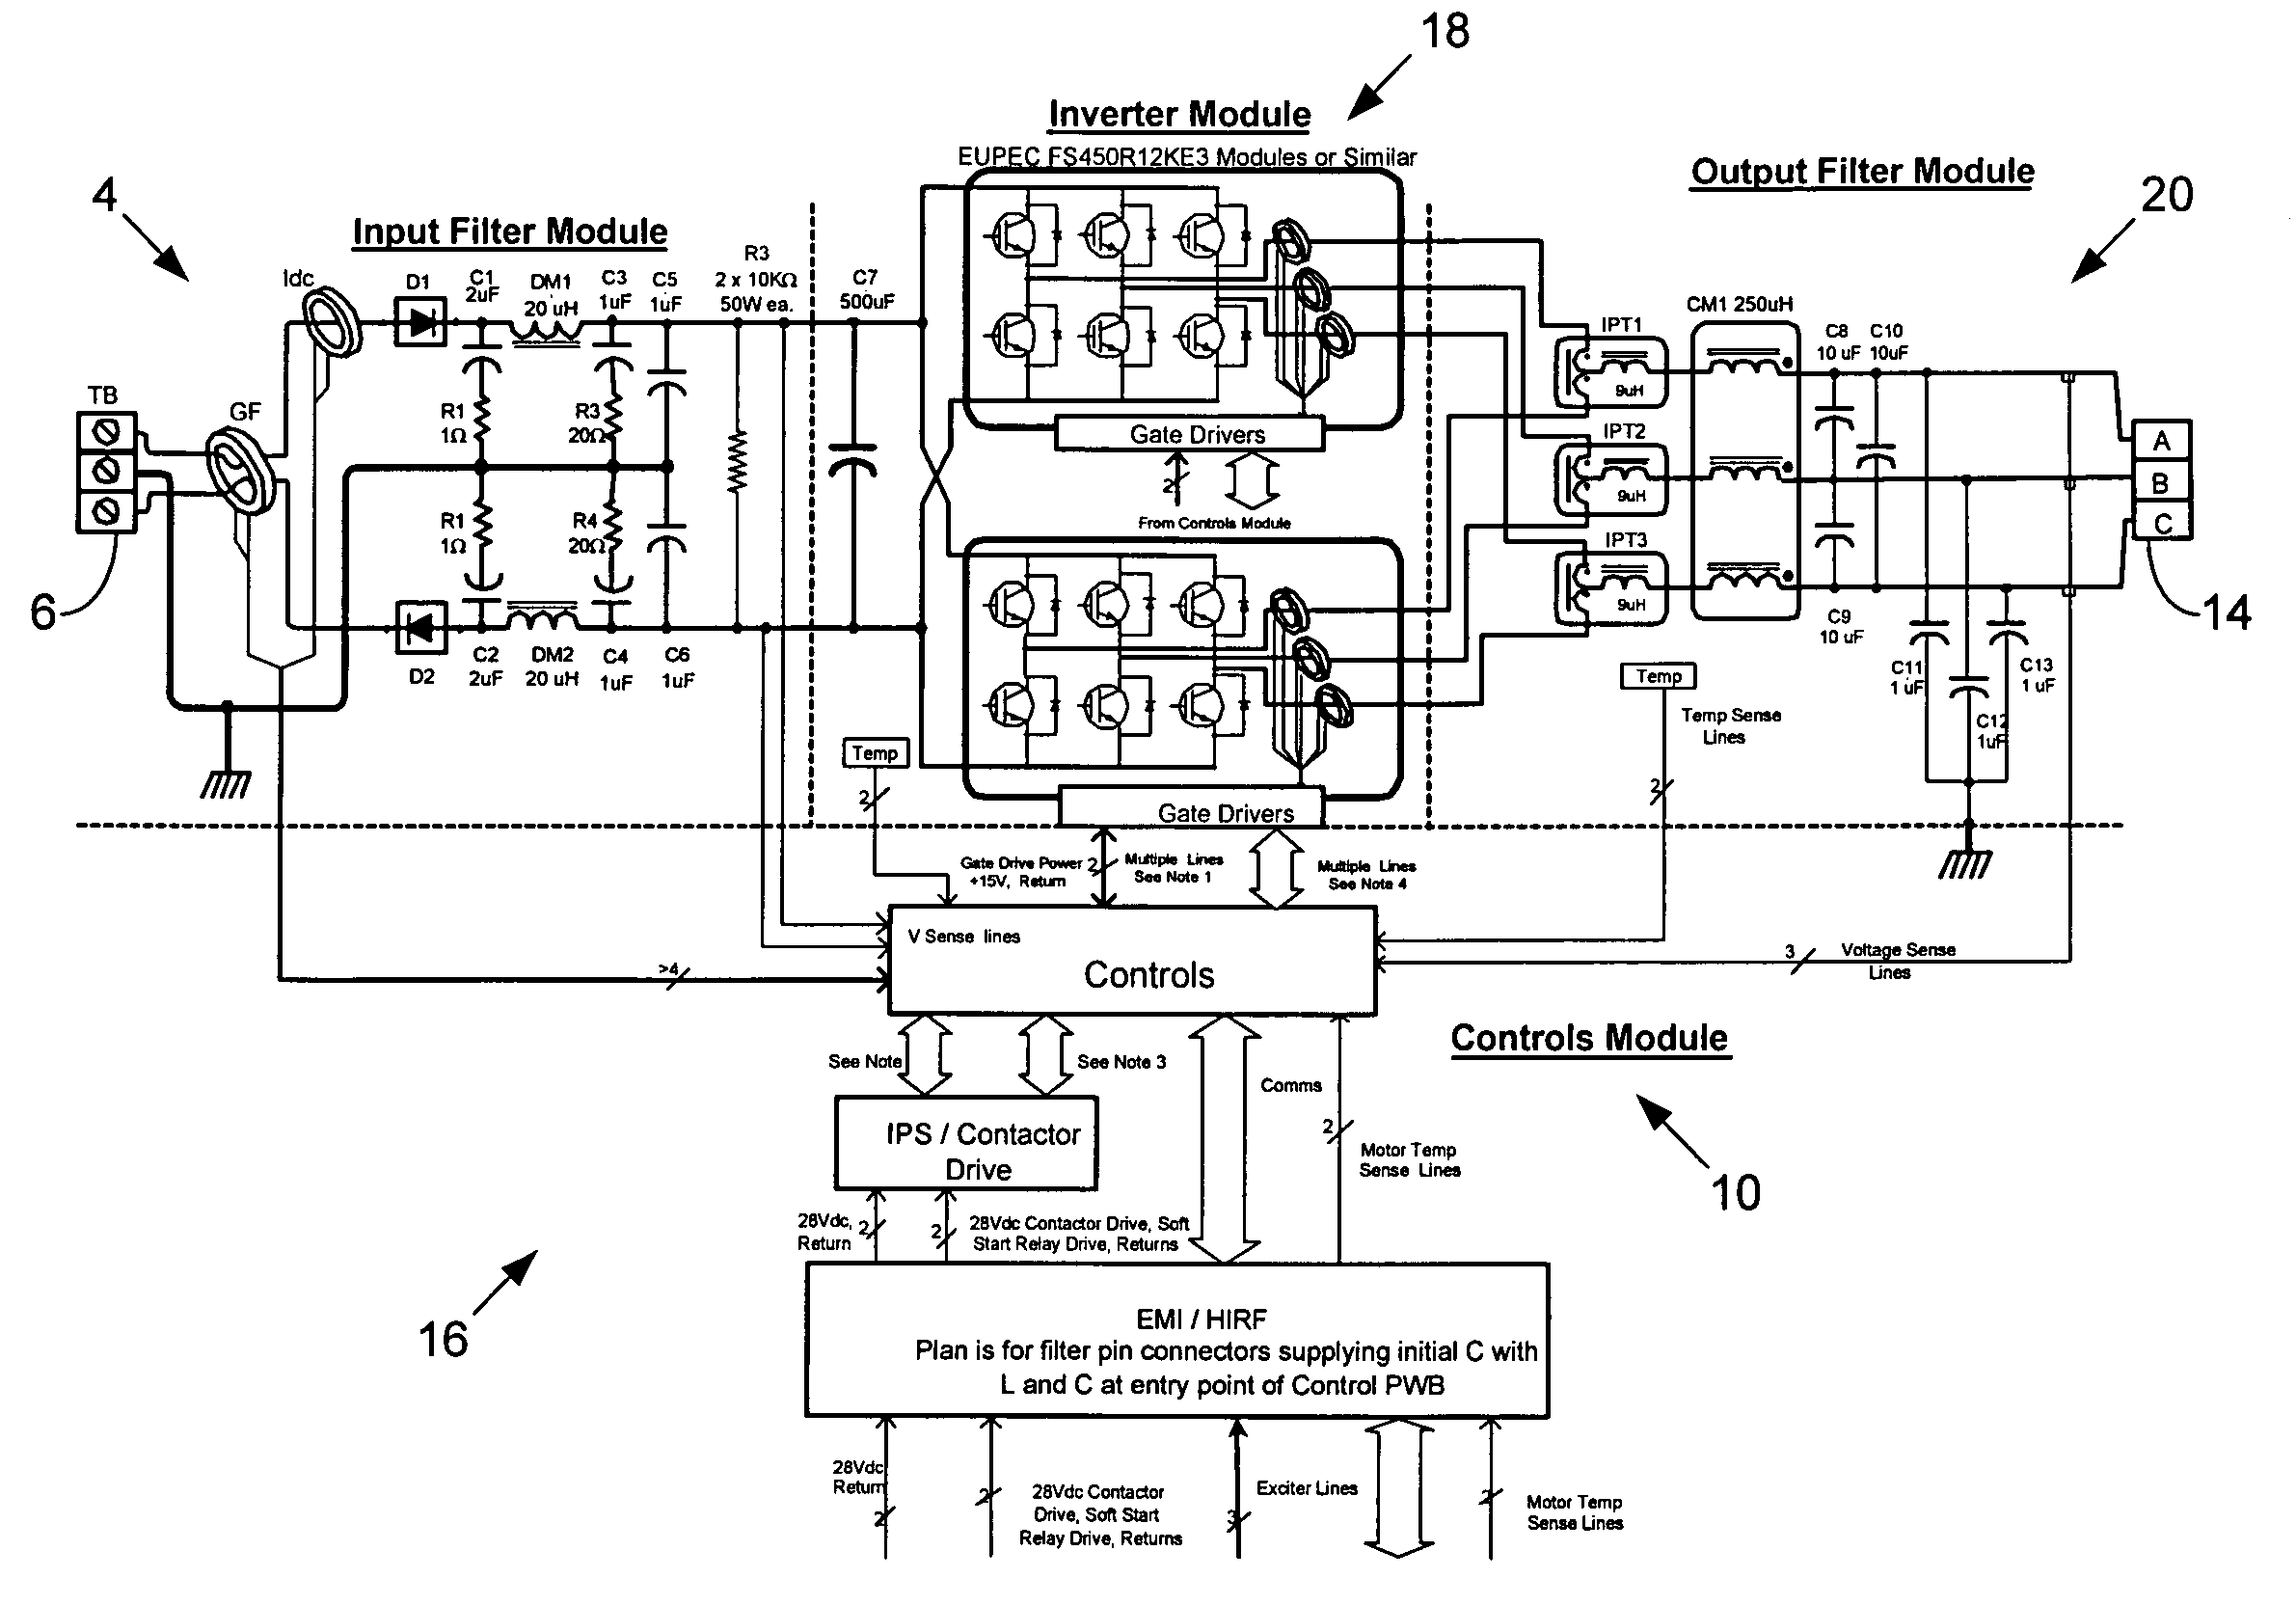 Patent US Parallel Inverter Motor Drive With Improved - Circuit diagram of relay driver